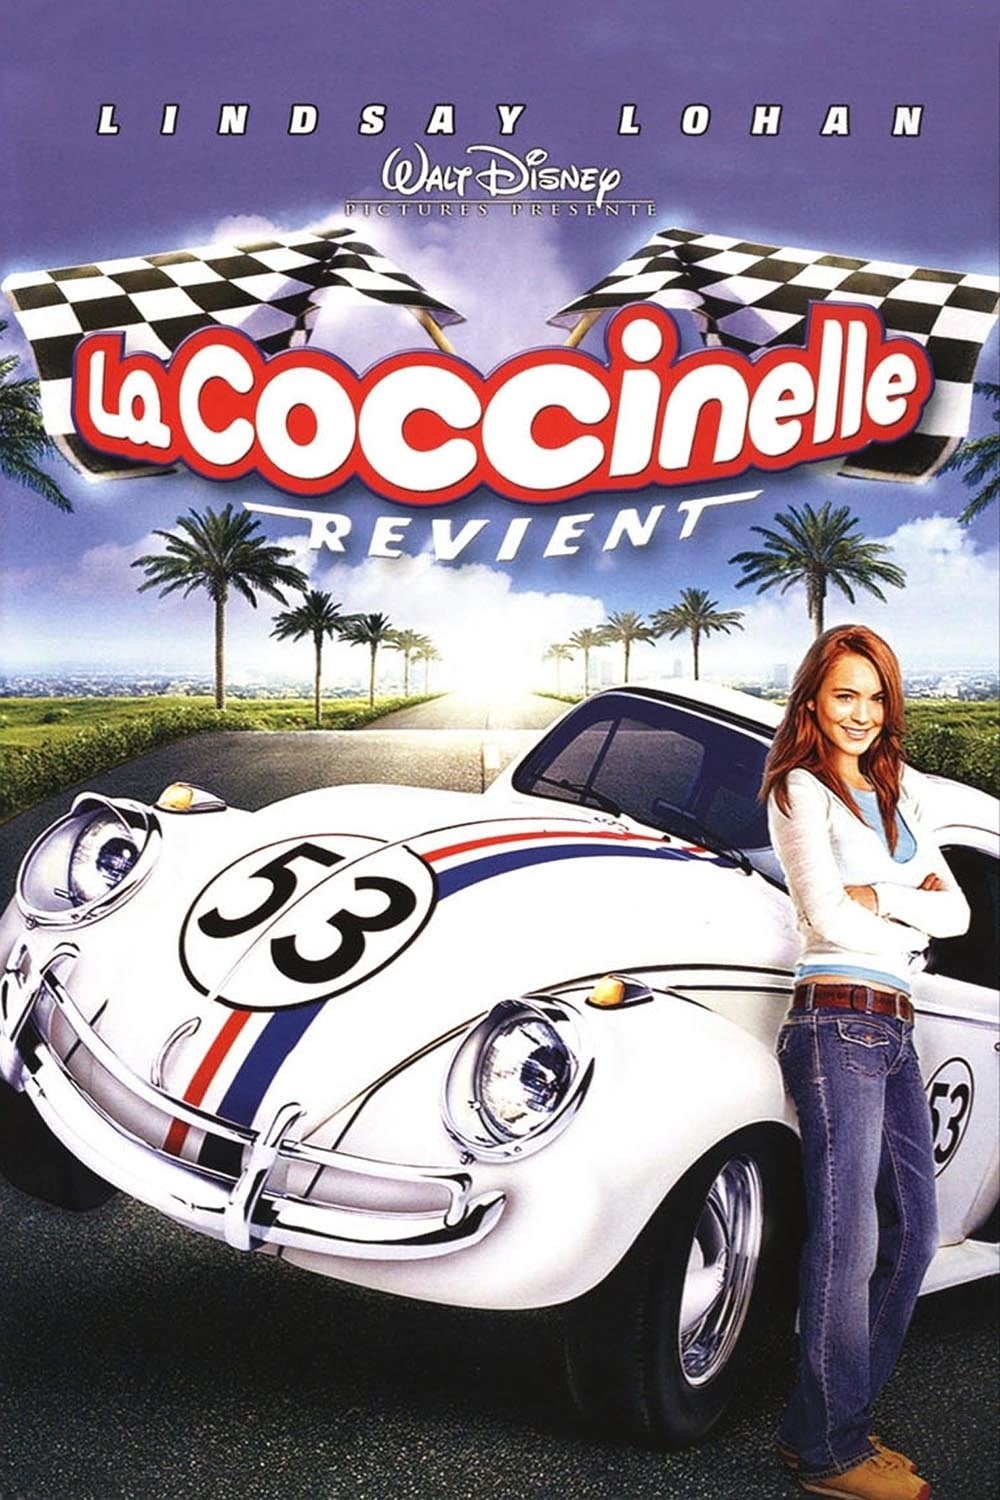 film la coccinelle revient 2005 en streaming vf complet filmstreaming hd com. Black Bedroom Furniture Sets. Home Design Ideas